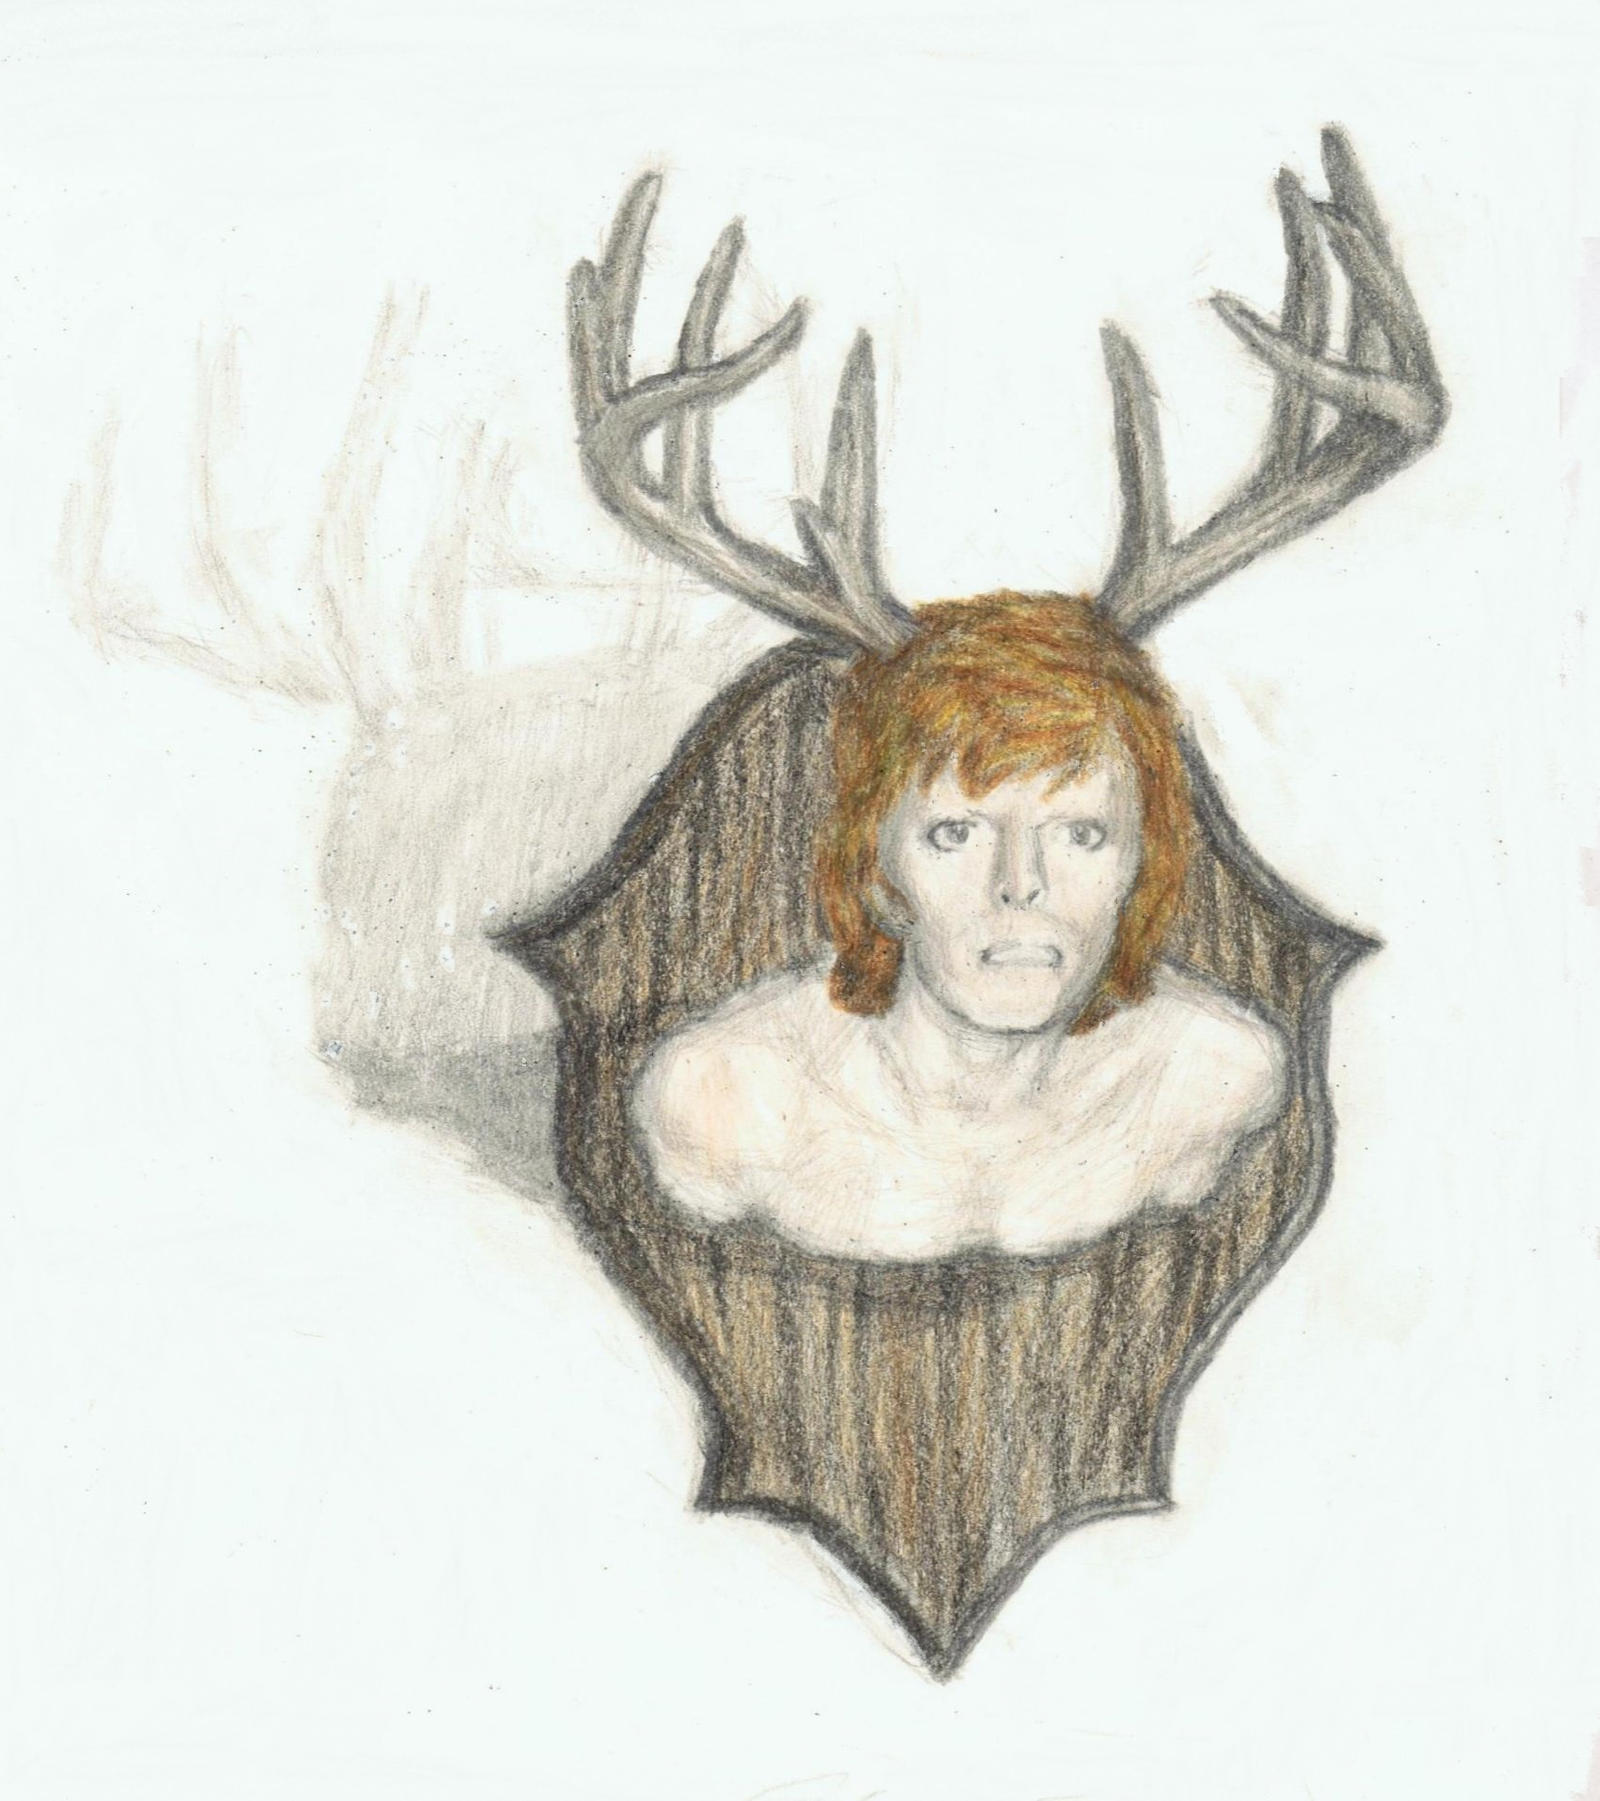 Cracked Actor with antlers 2 by gagambo